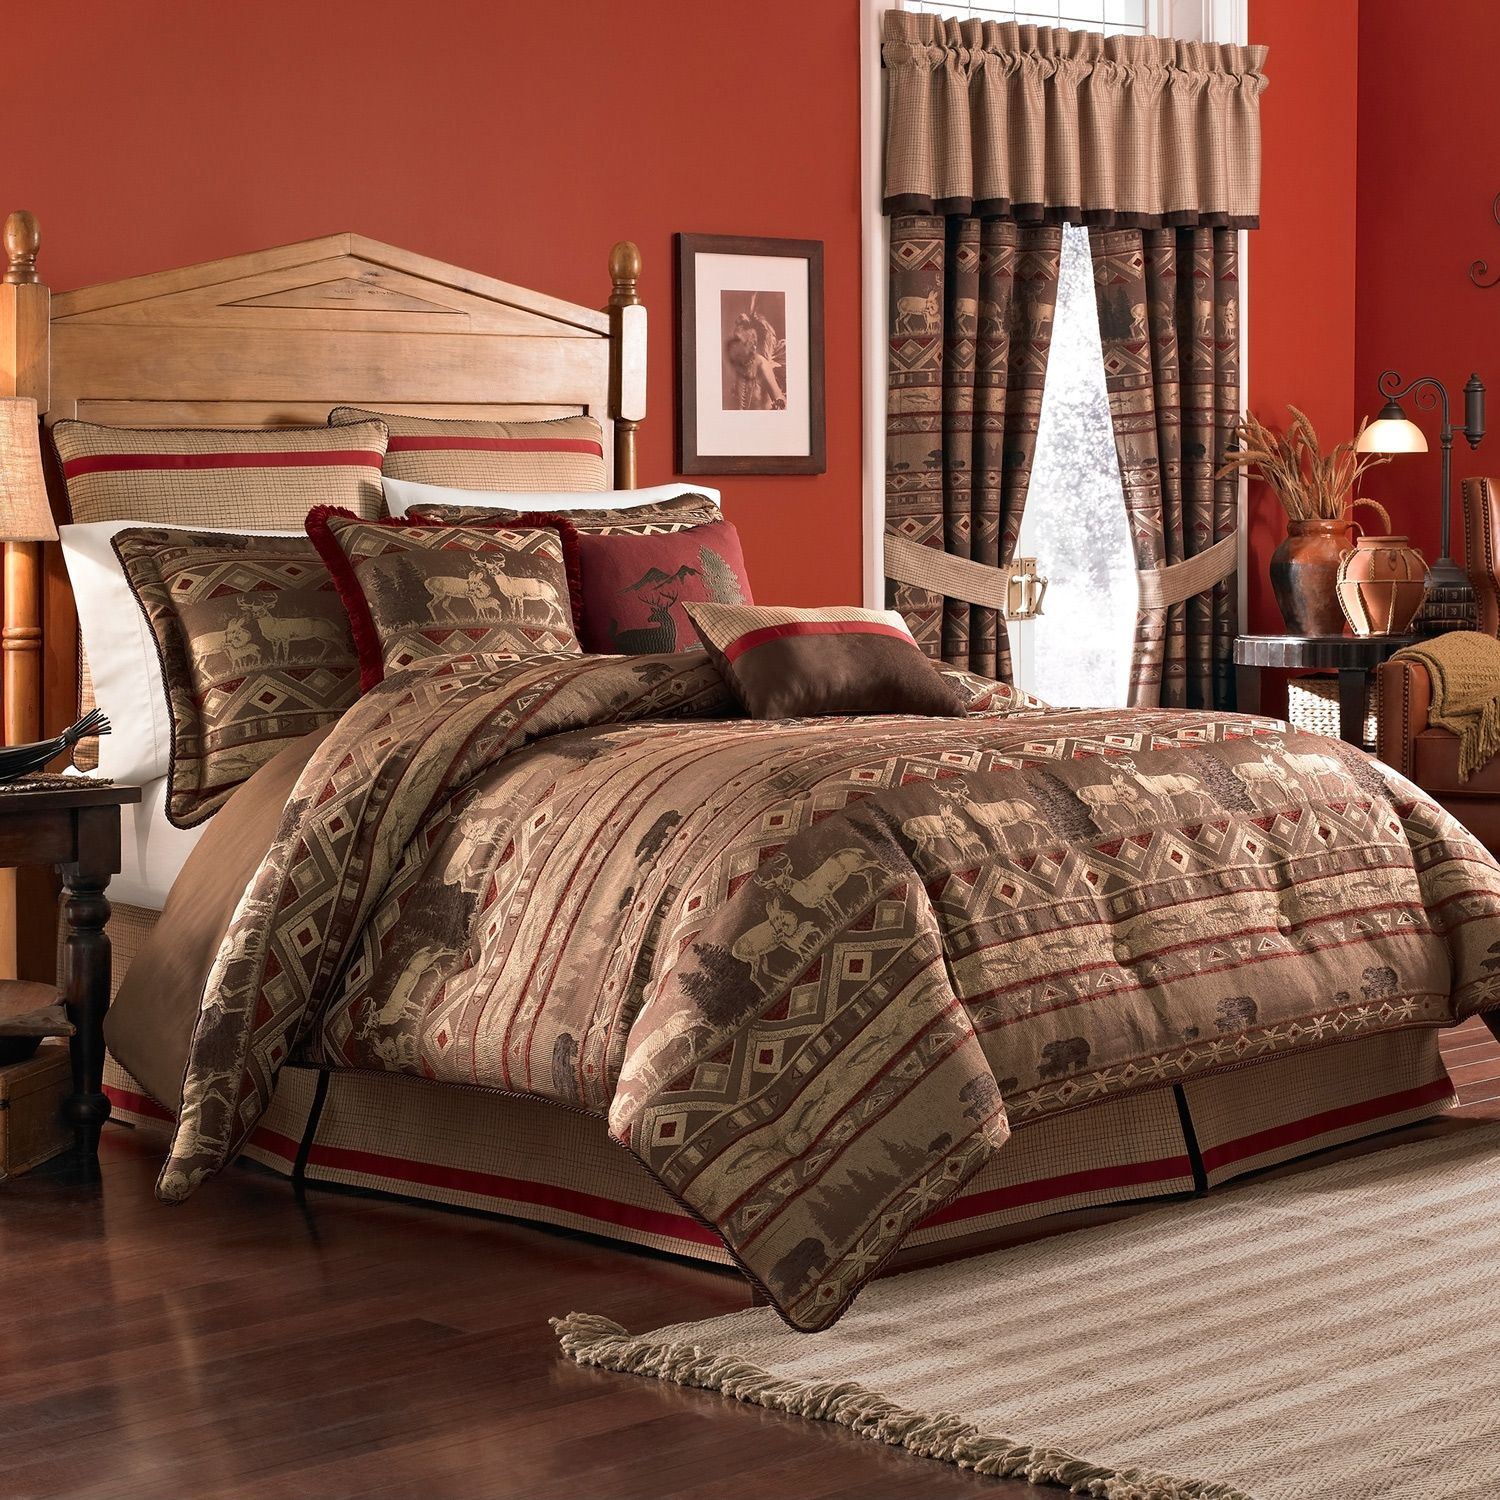 Breathtaking california king bedding for bedroom design with california king bed frame